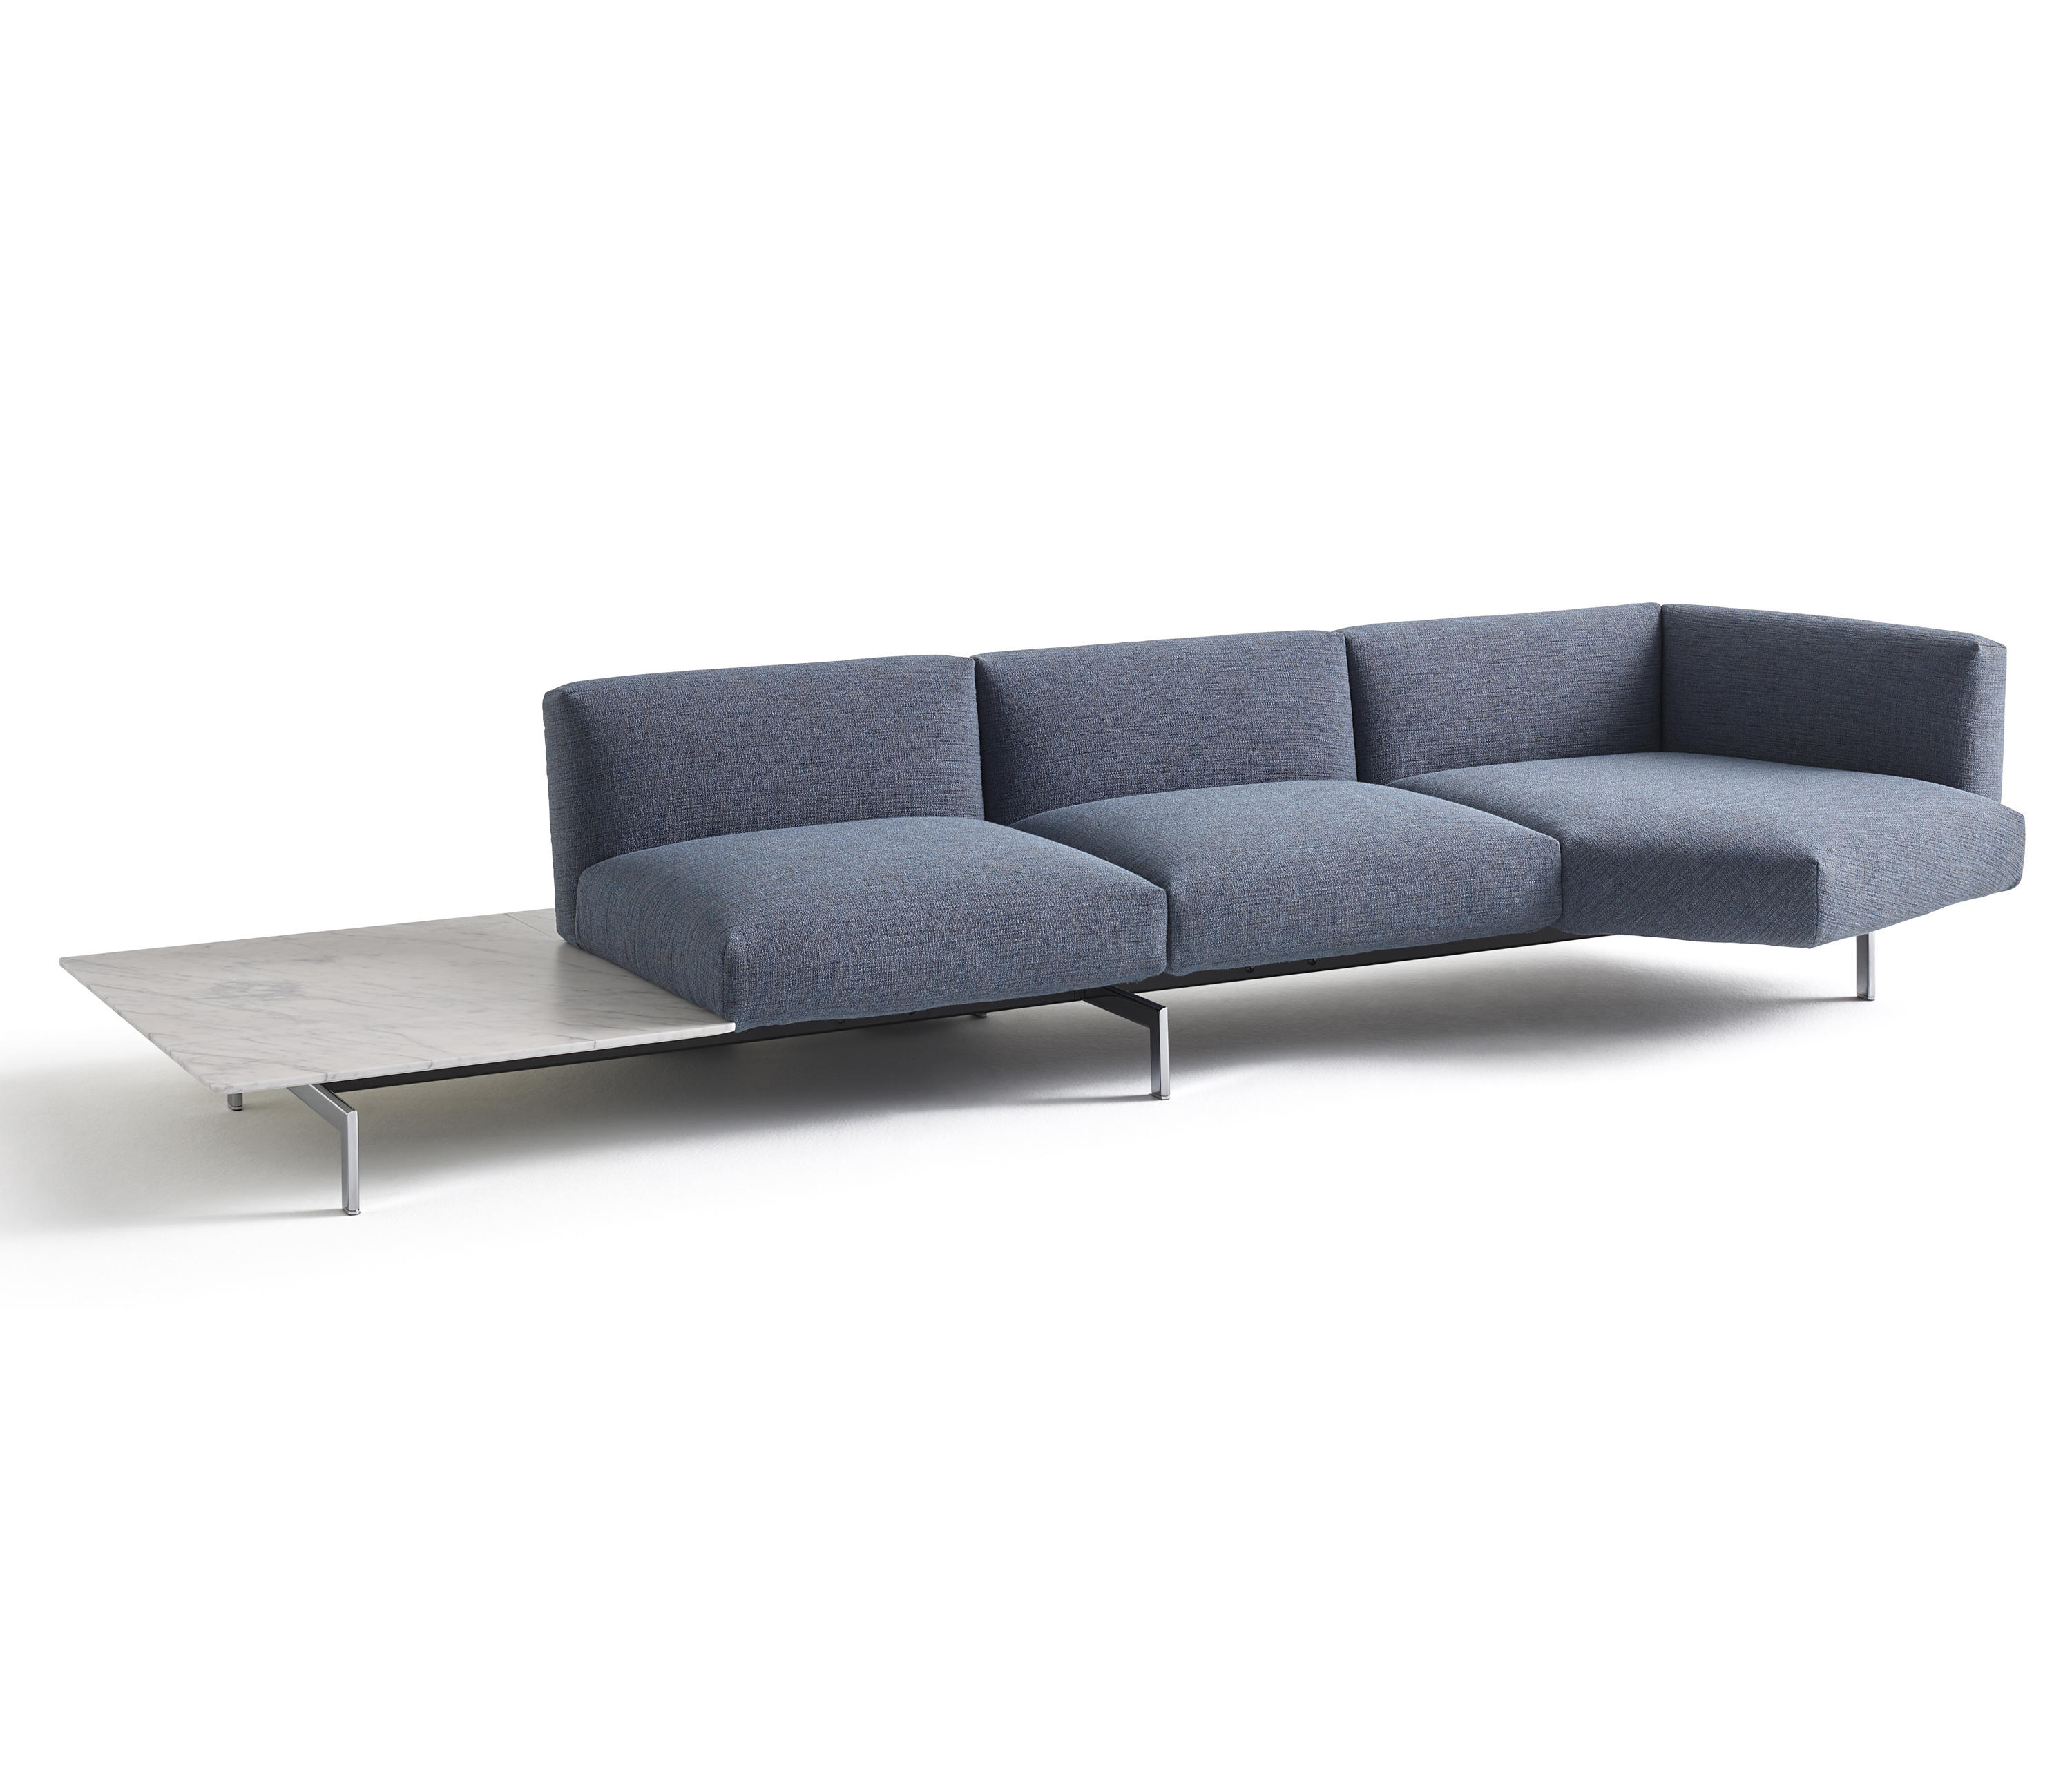 Avio Sofa System By Knoll International Sofas